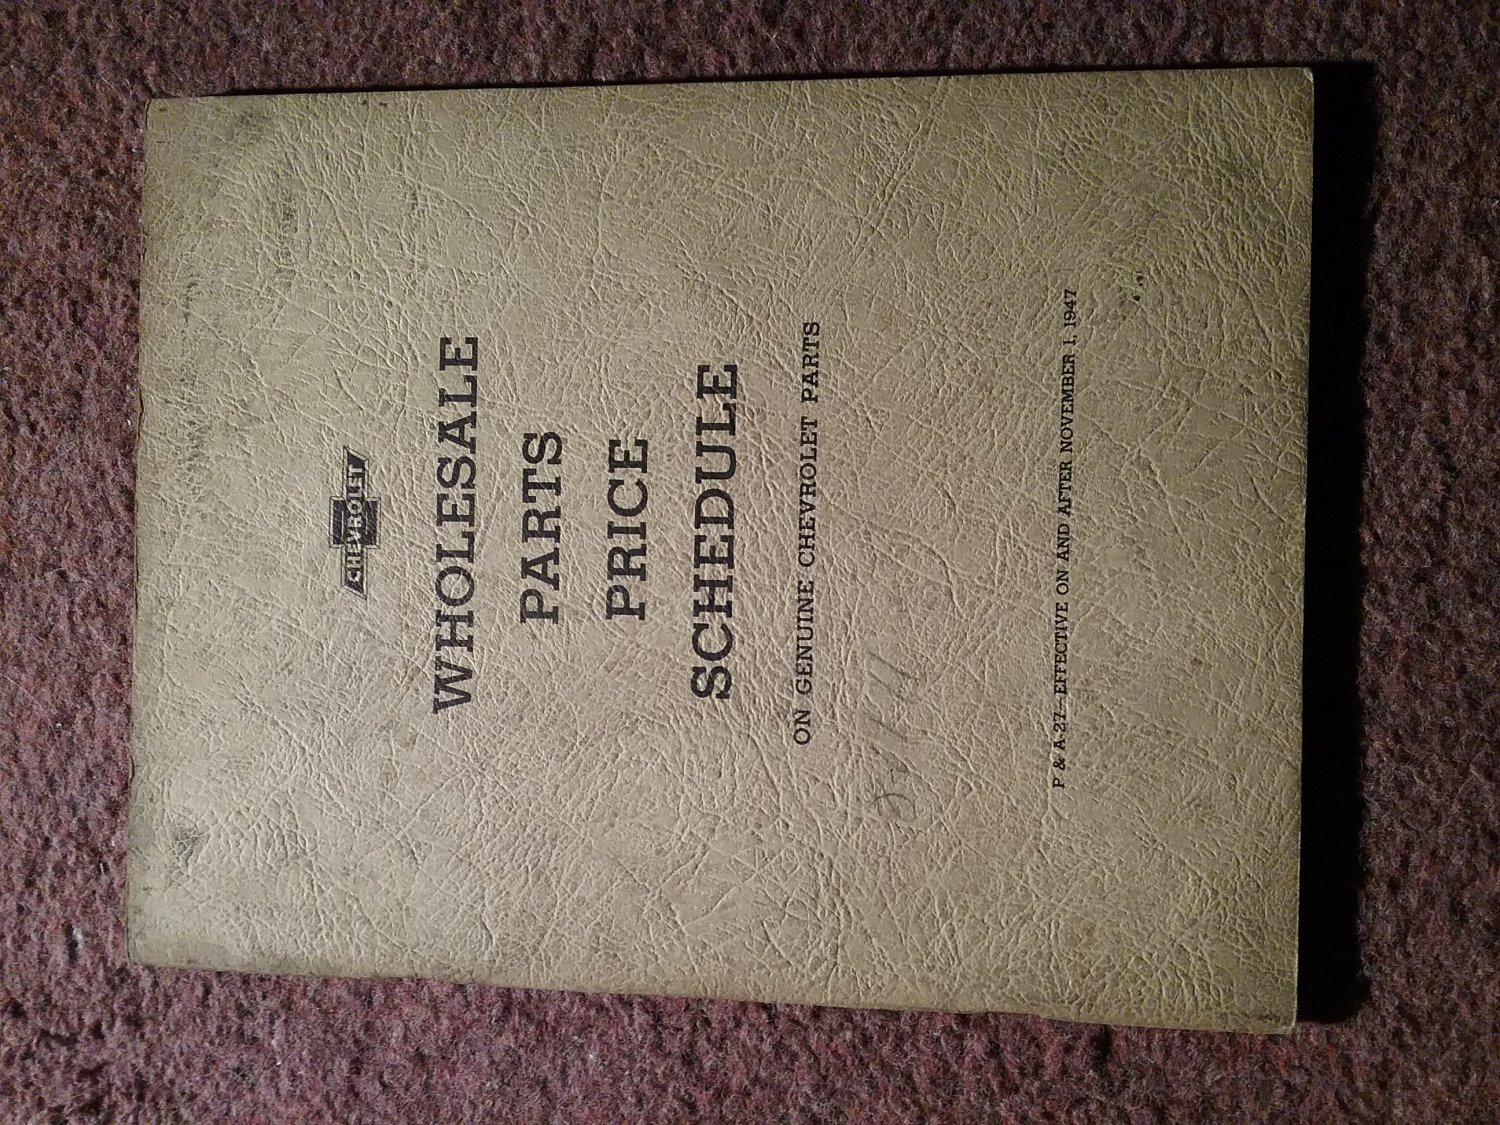 Vintage 1947 Chevrolet Wholesale Parts Price Schedule 070716124